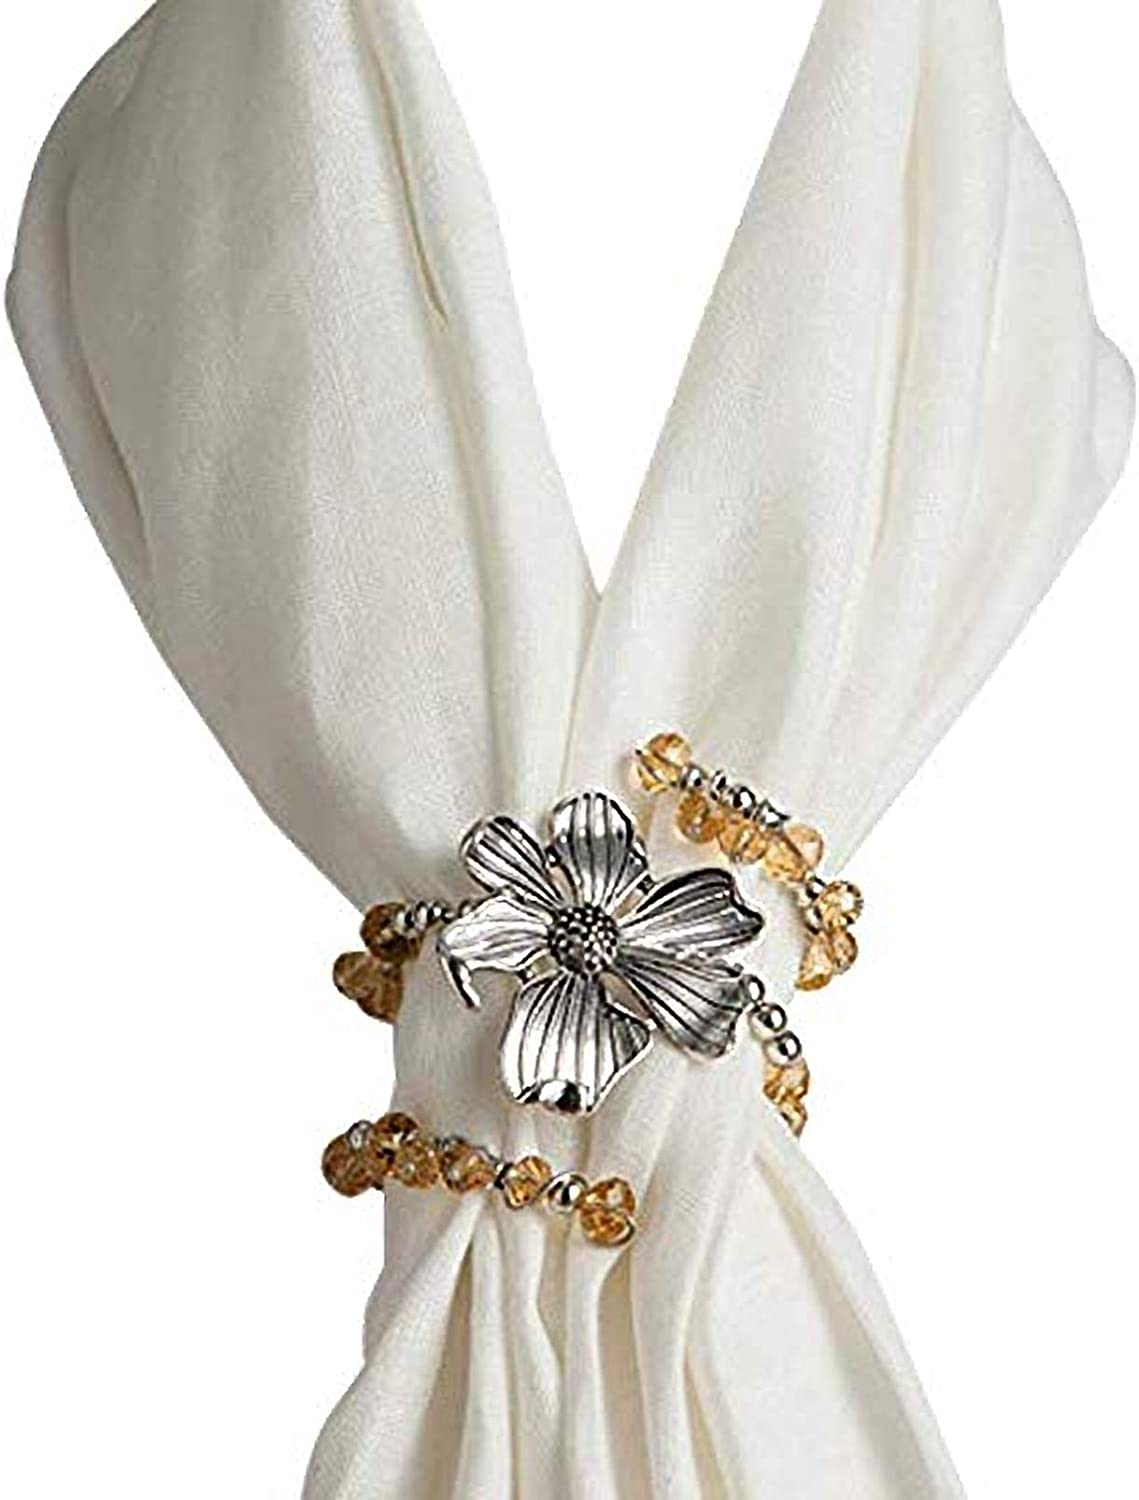 DEMDACO Floral Silver and Amber Beaded One Size Women's Zinc Alloy Scarf Twist